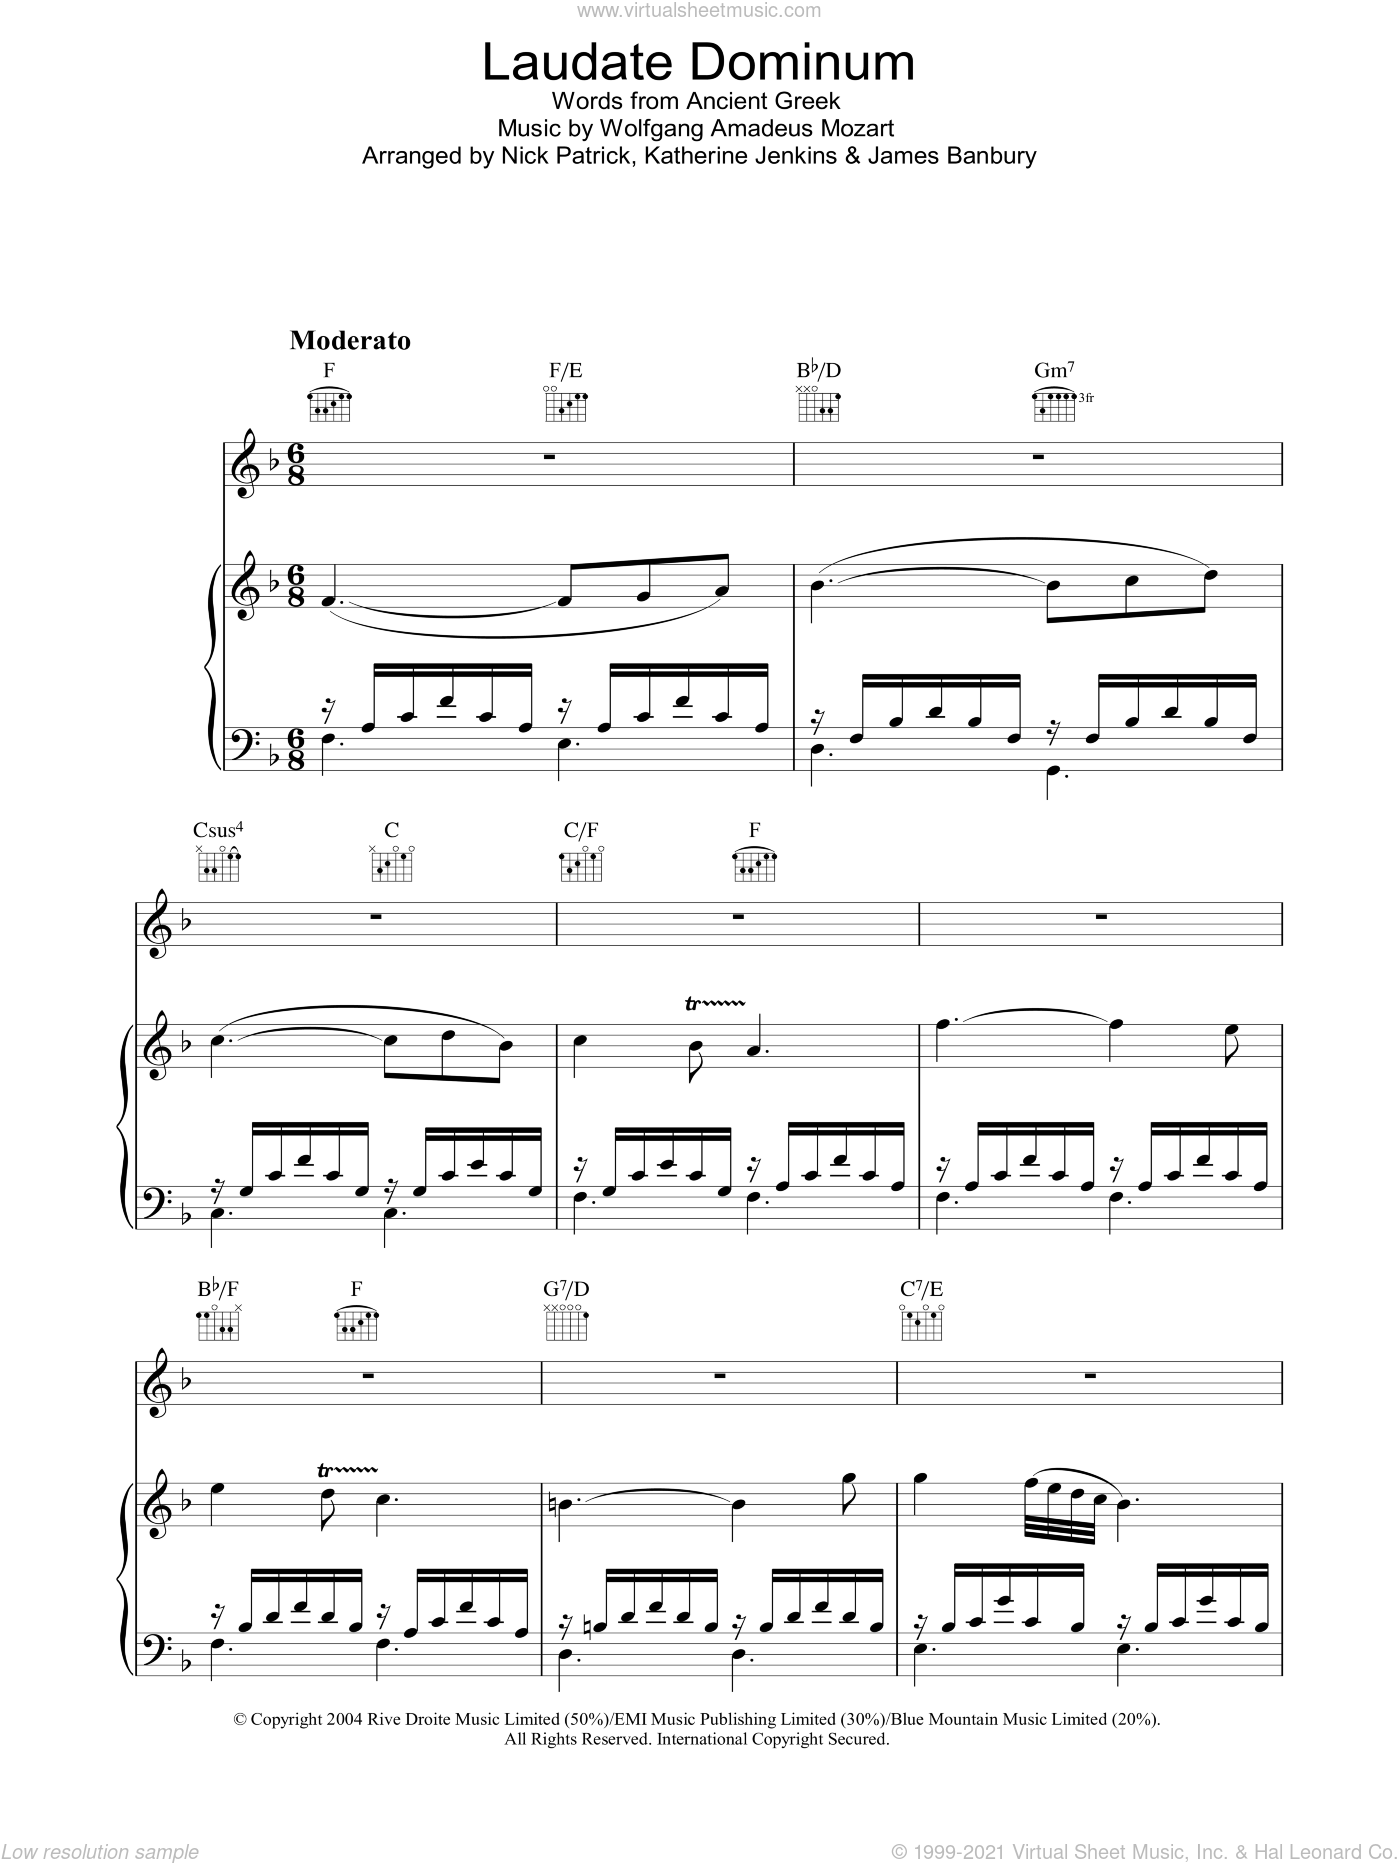 Laudate Dominum sheet music for voice, piano or guitar by Katherine Jenkins, James Banbury, Nick Patrick and Wolfgang Amadeus Mozart, classical score, intermediate skill level